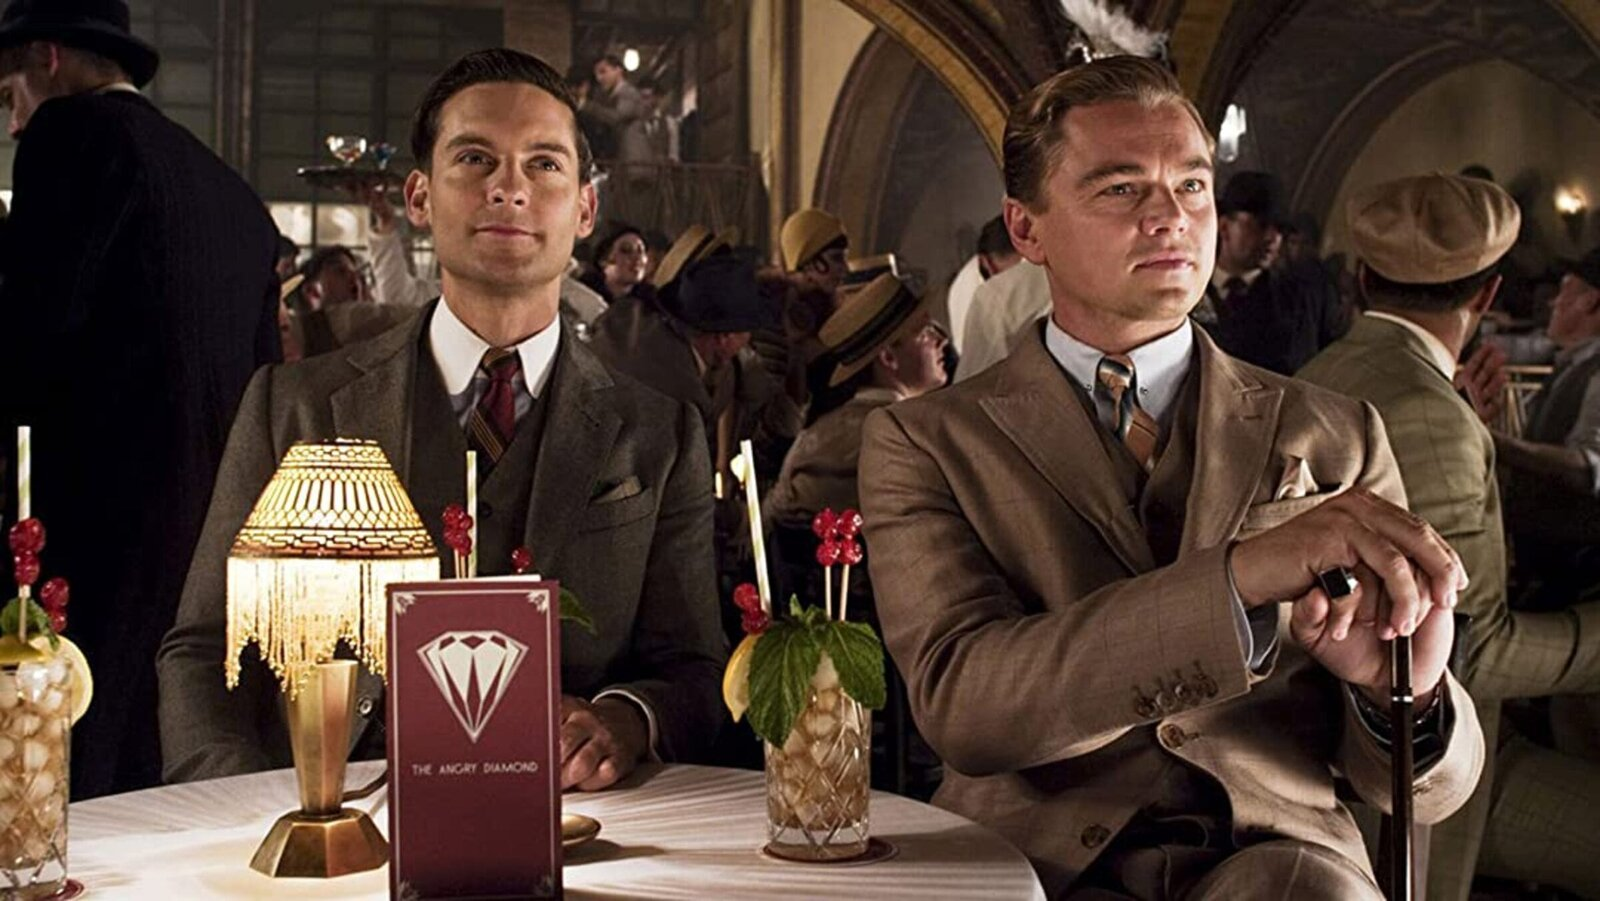 Watch these 'Great Gatsby' movies now – FilmyOne.com